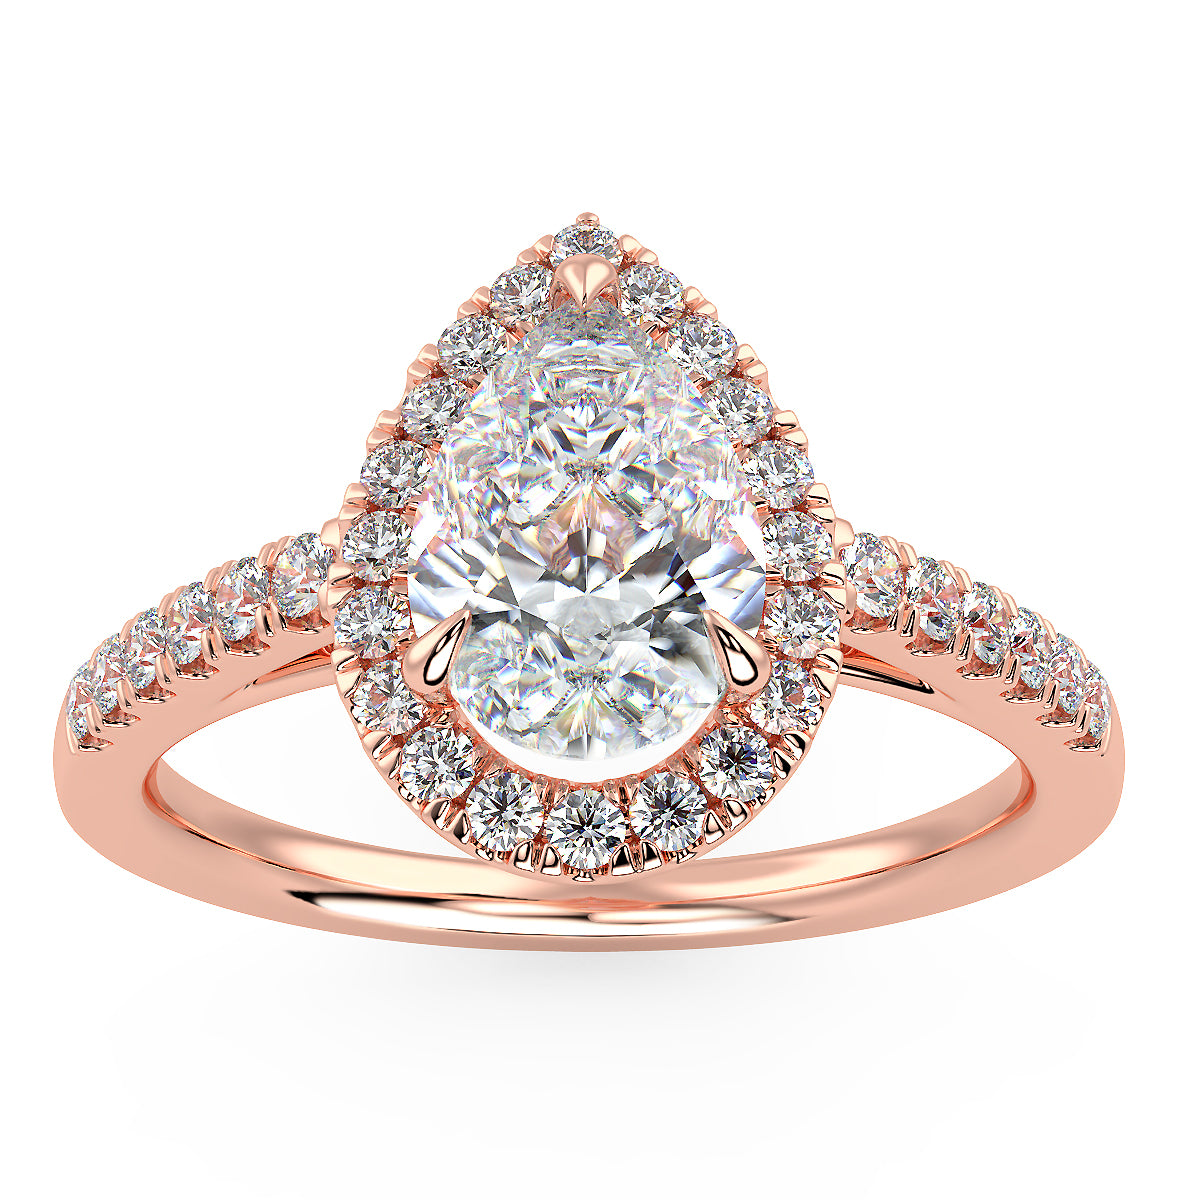 Pavo Engagement Ring in Rose Gold